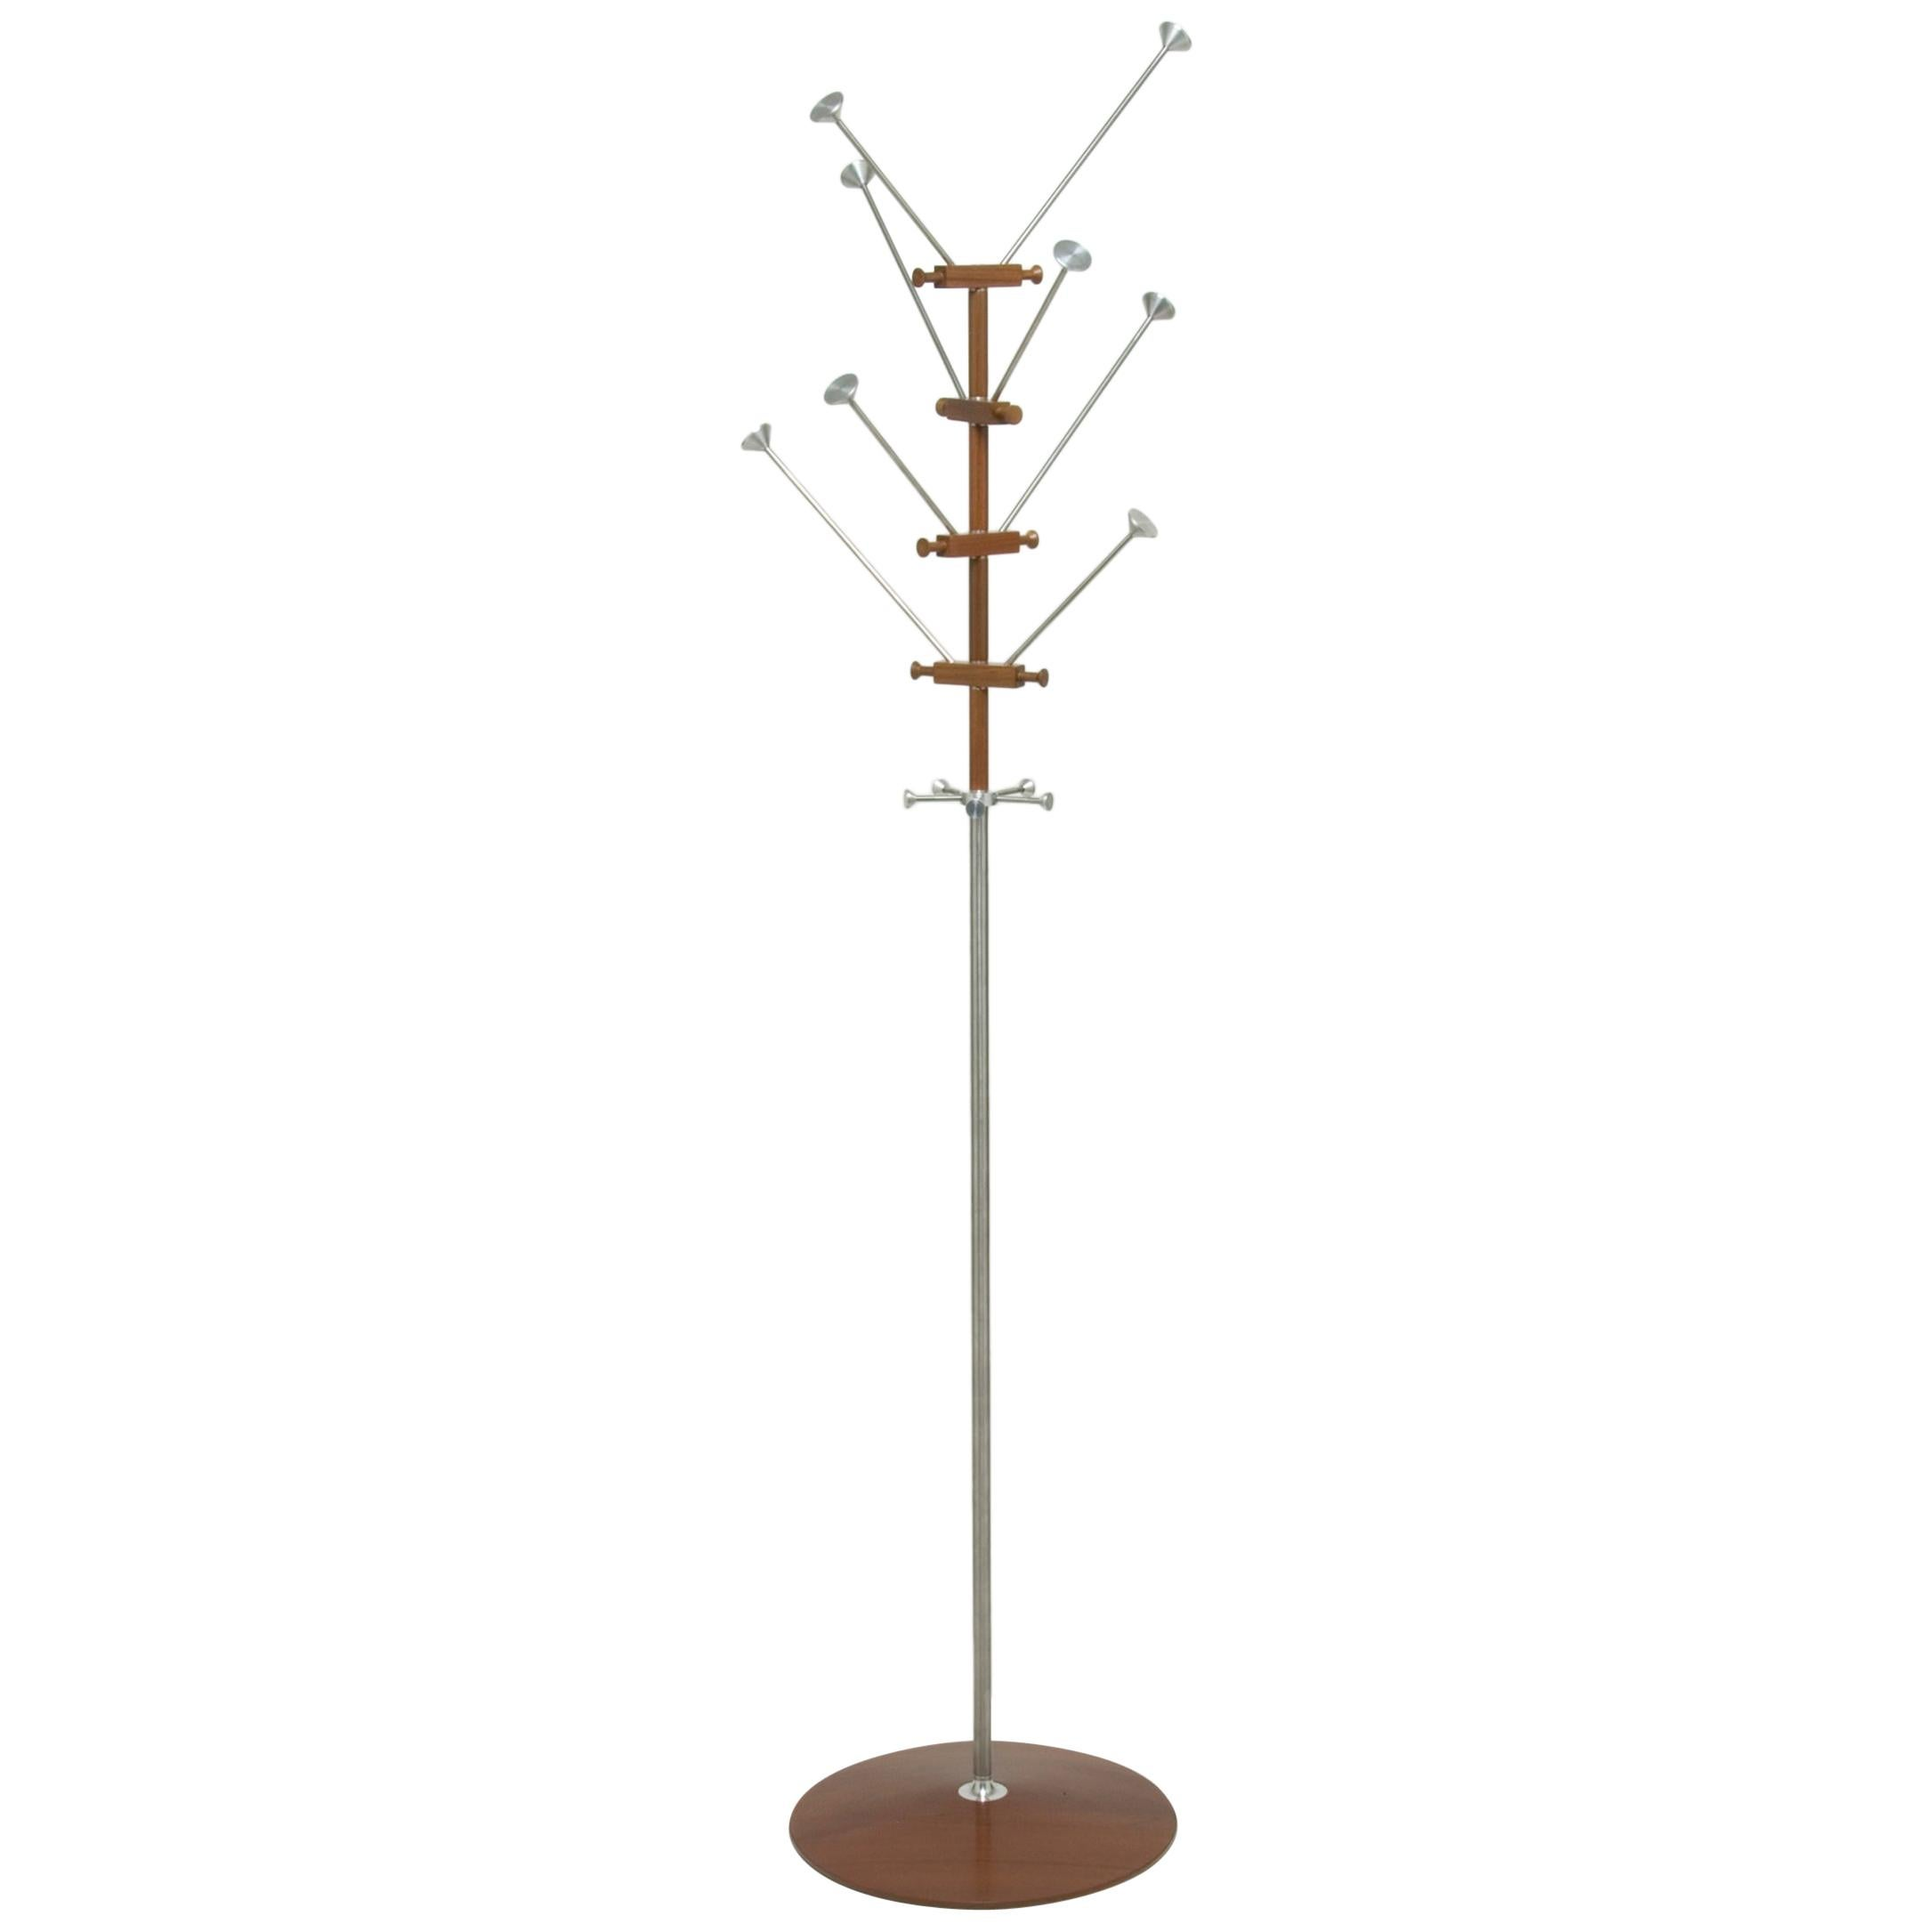 Contemporary Wood and Metal Coat Hanger